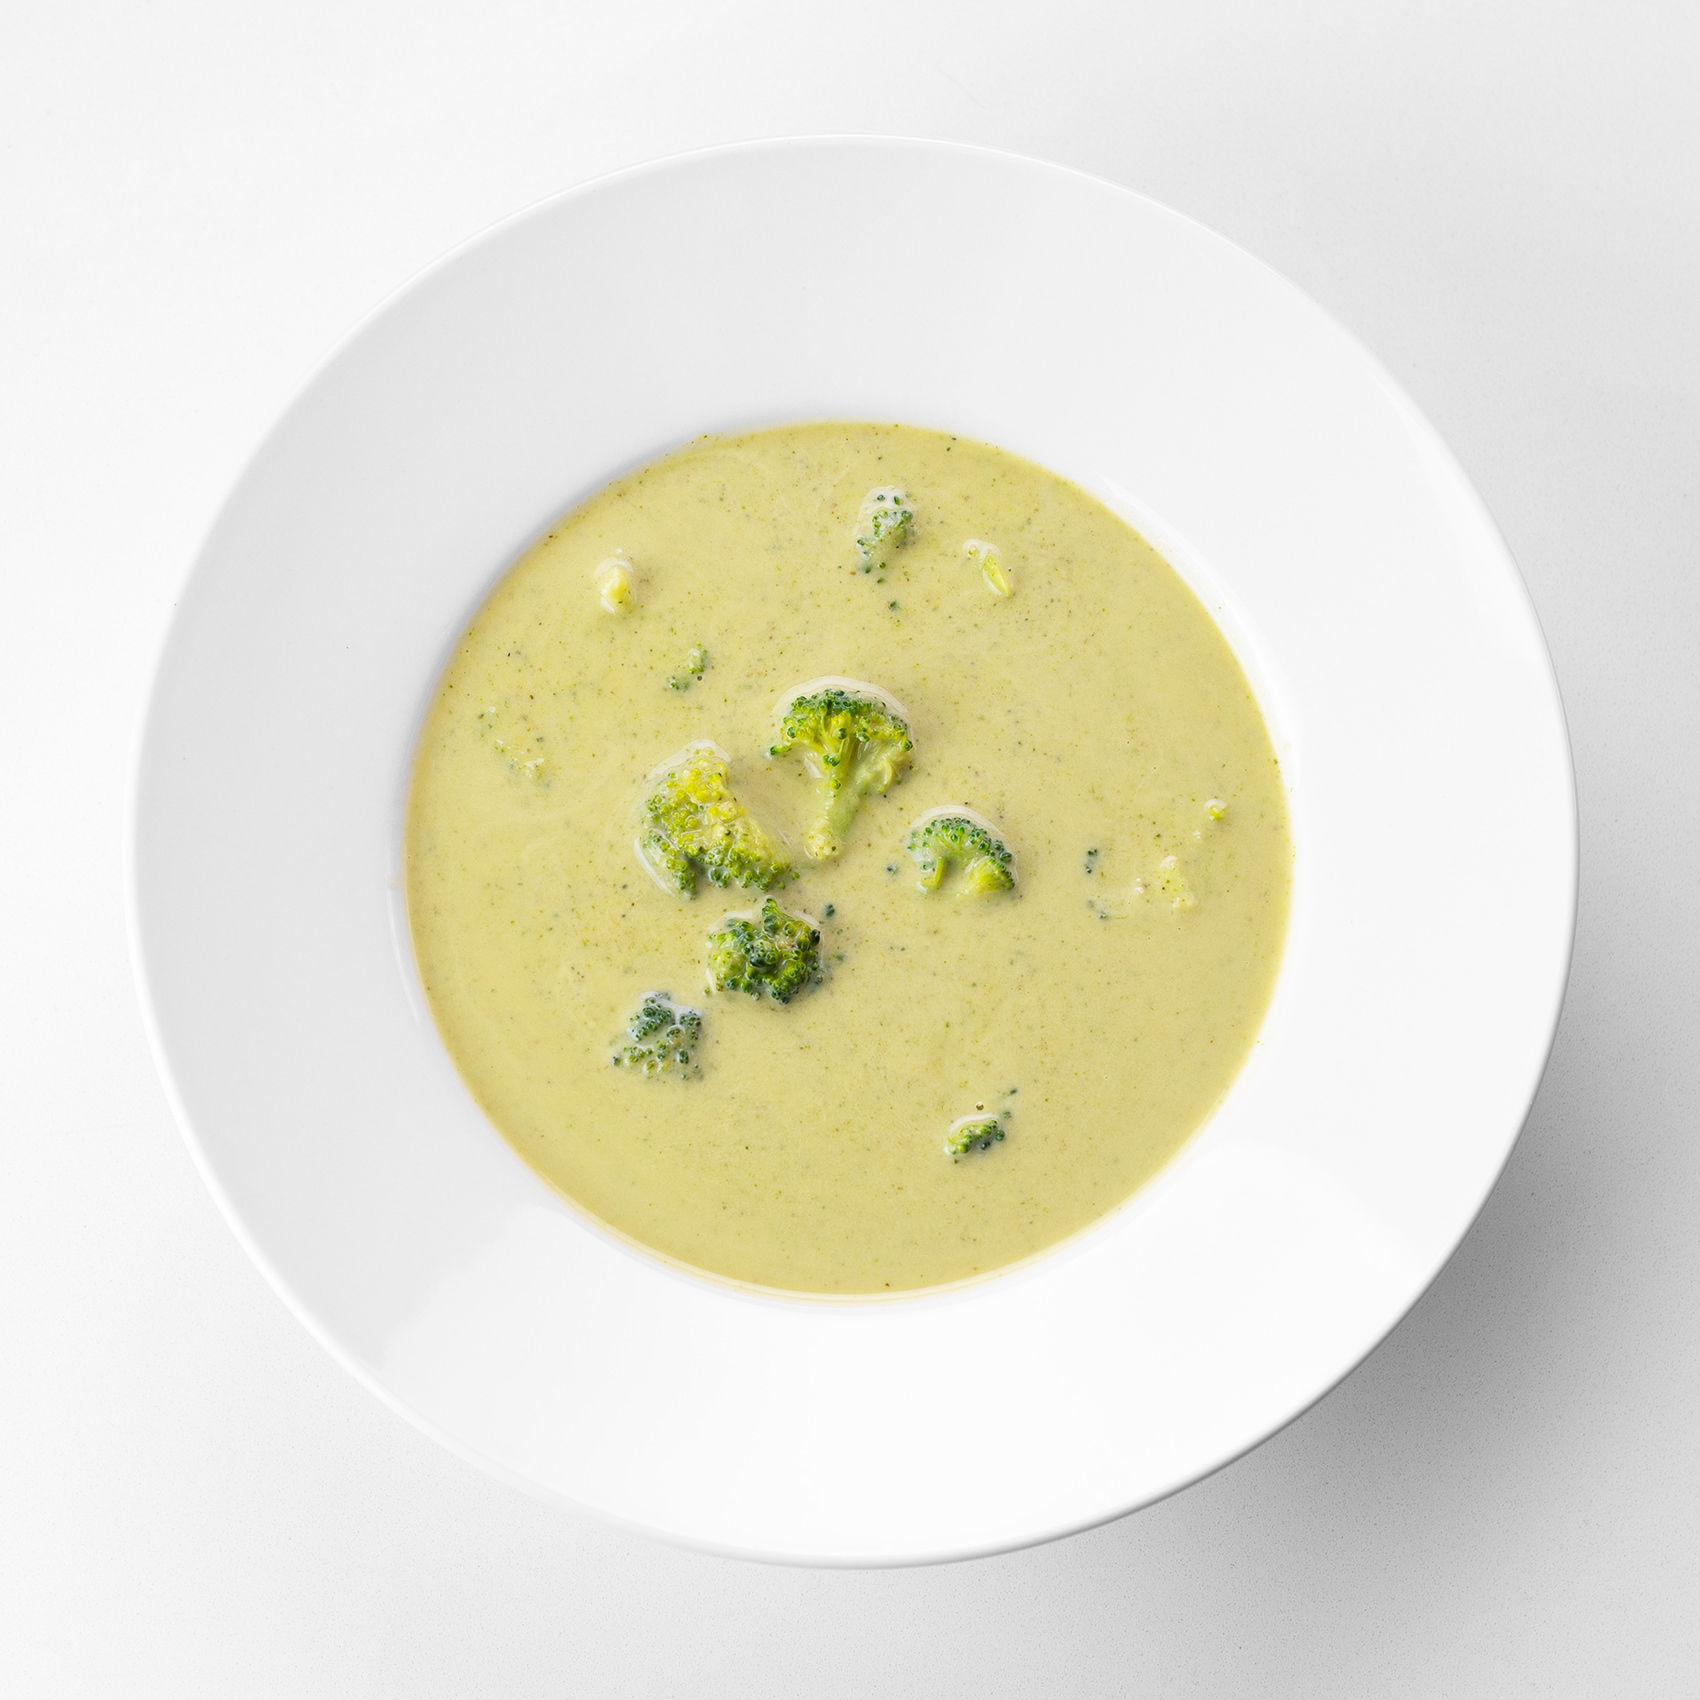 House-Made Cream of Broccoli Soup